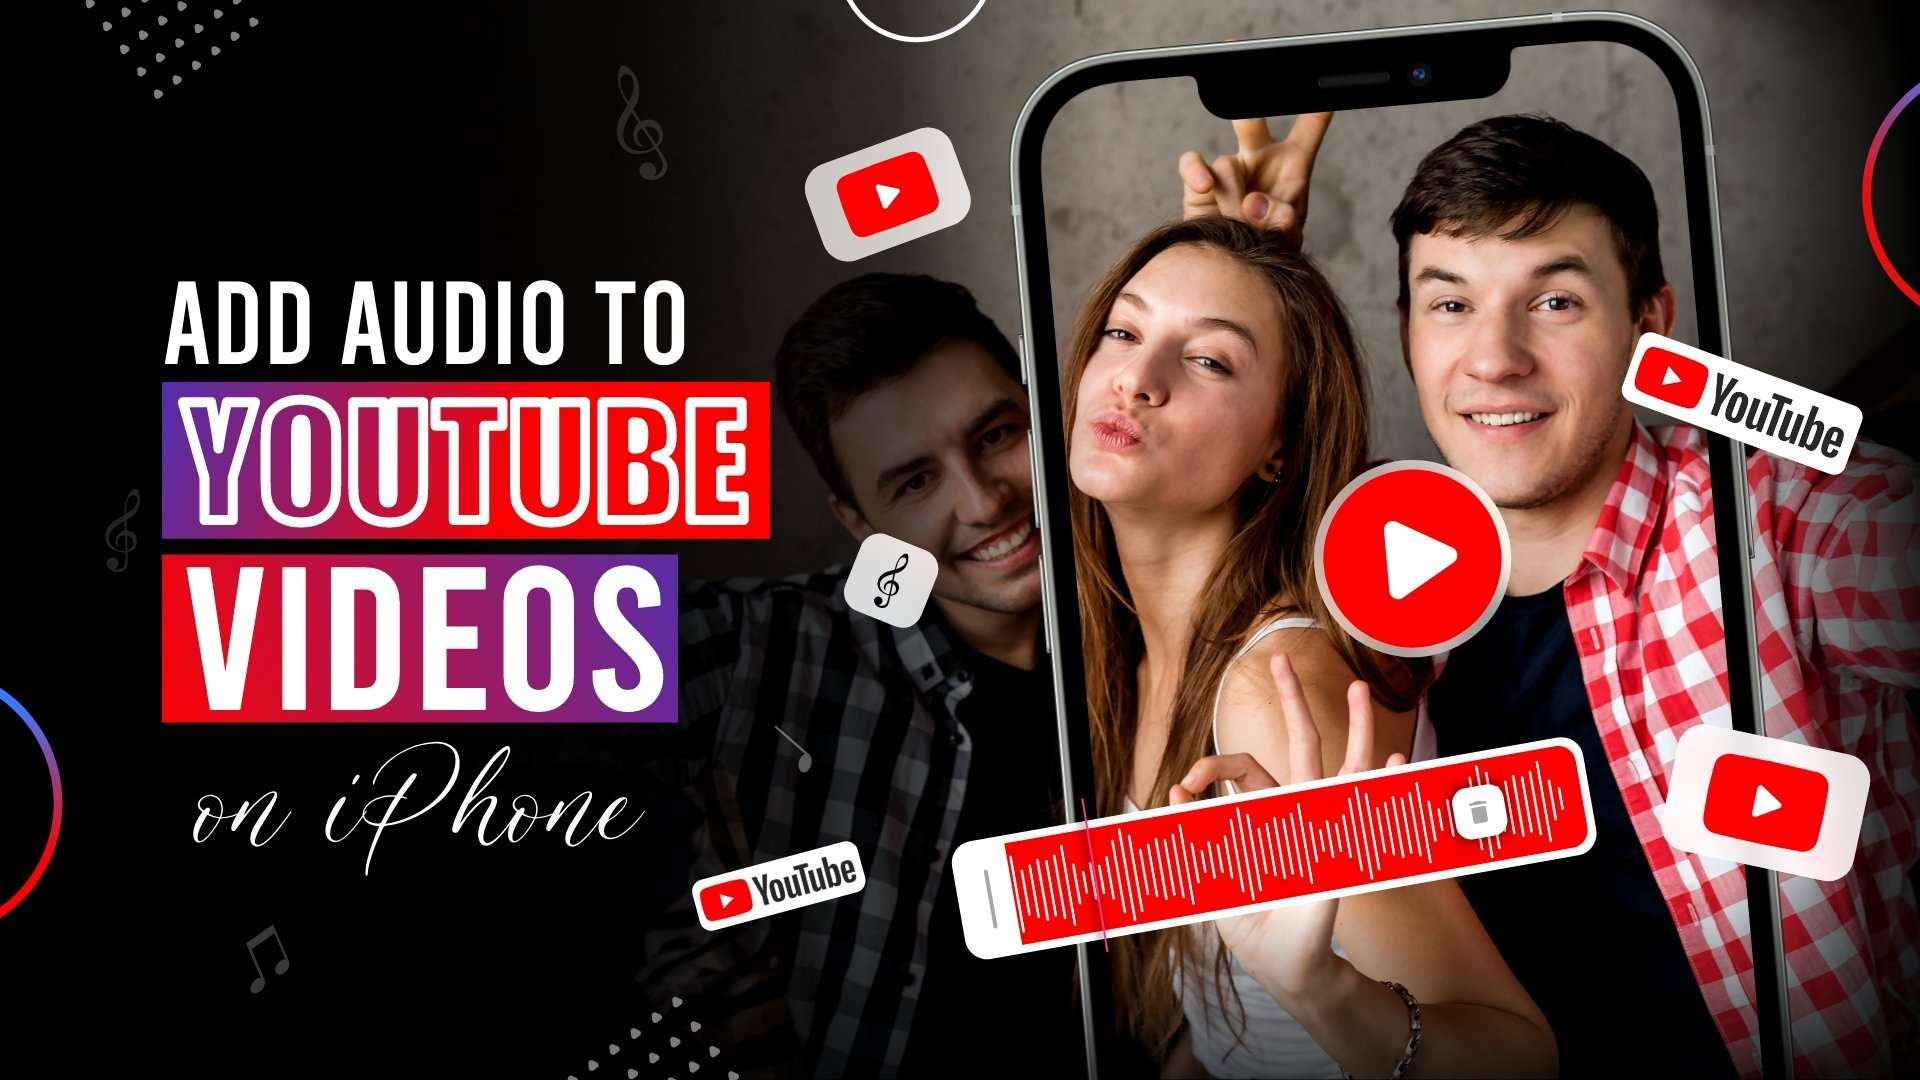 Add audio to a youtube video on iPhone